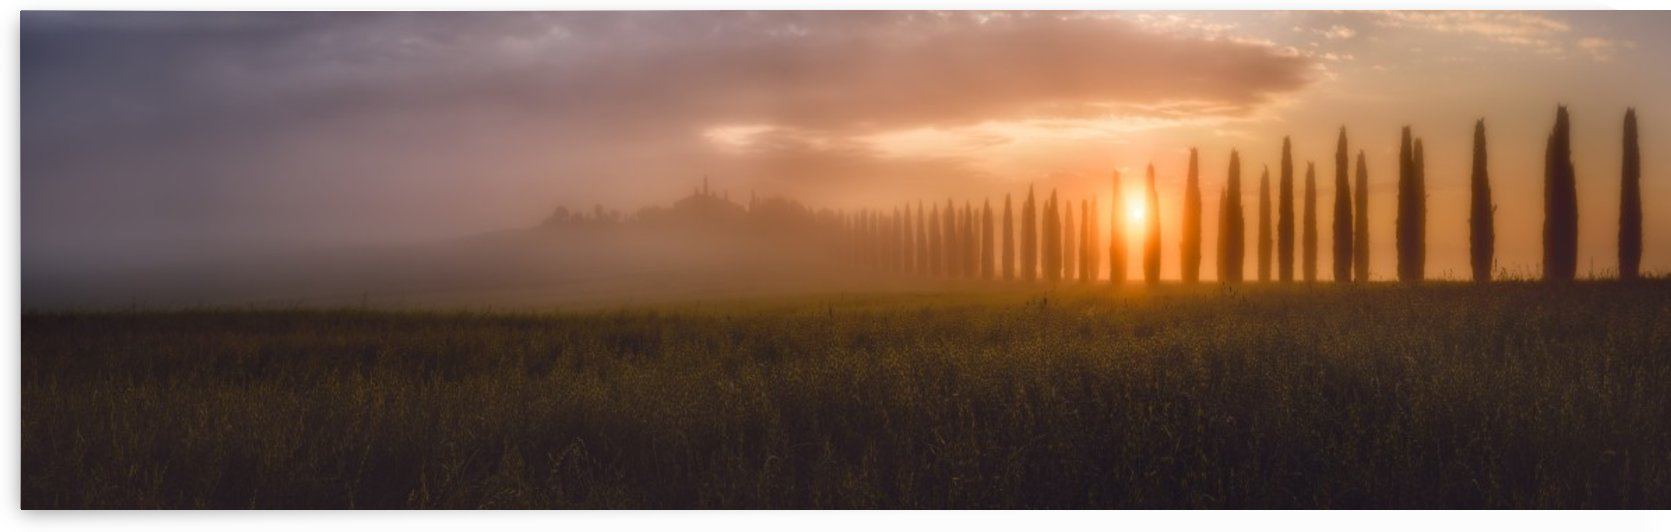 Tuscany Sunrising by 1x